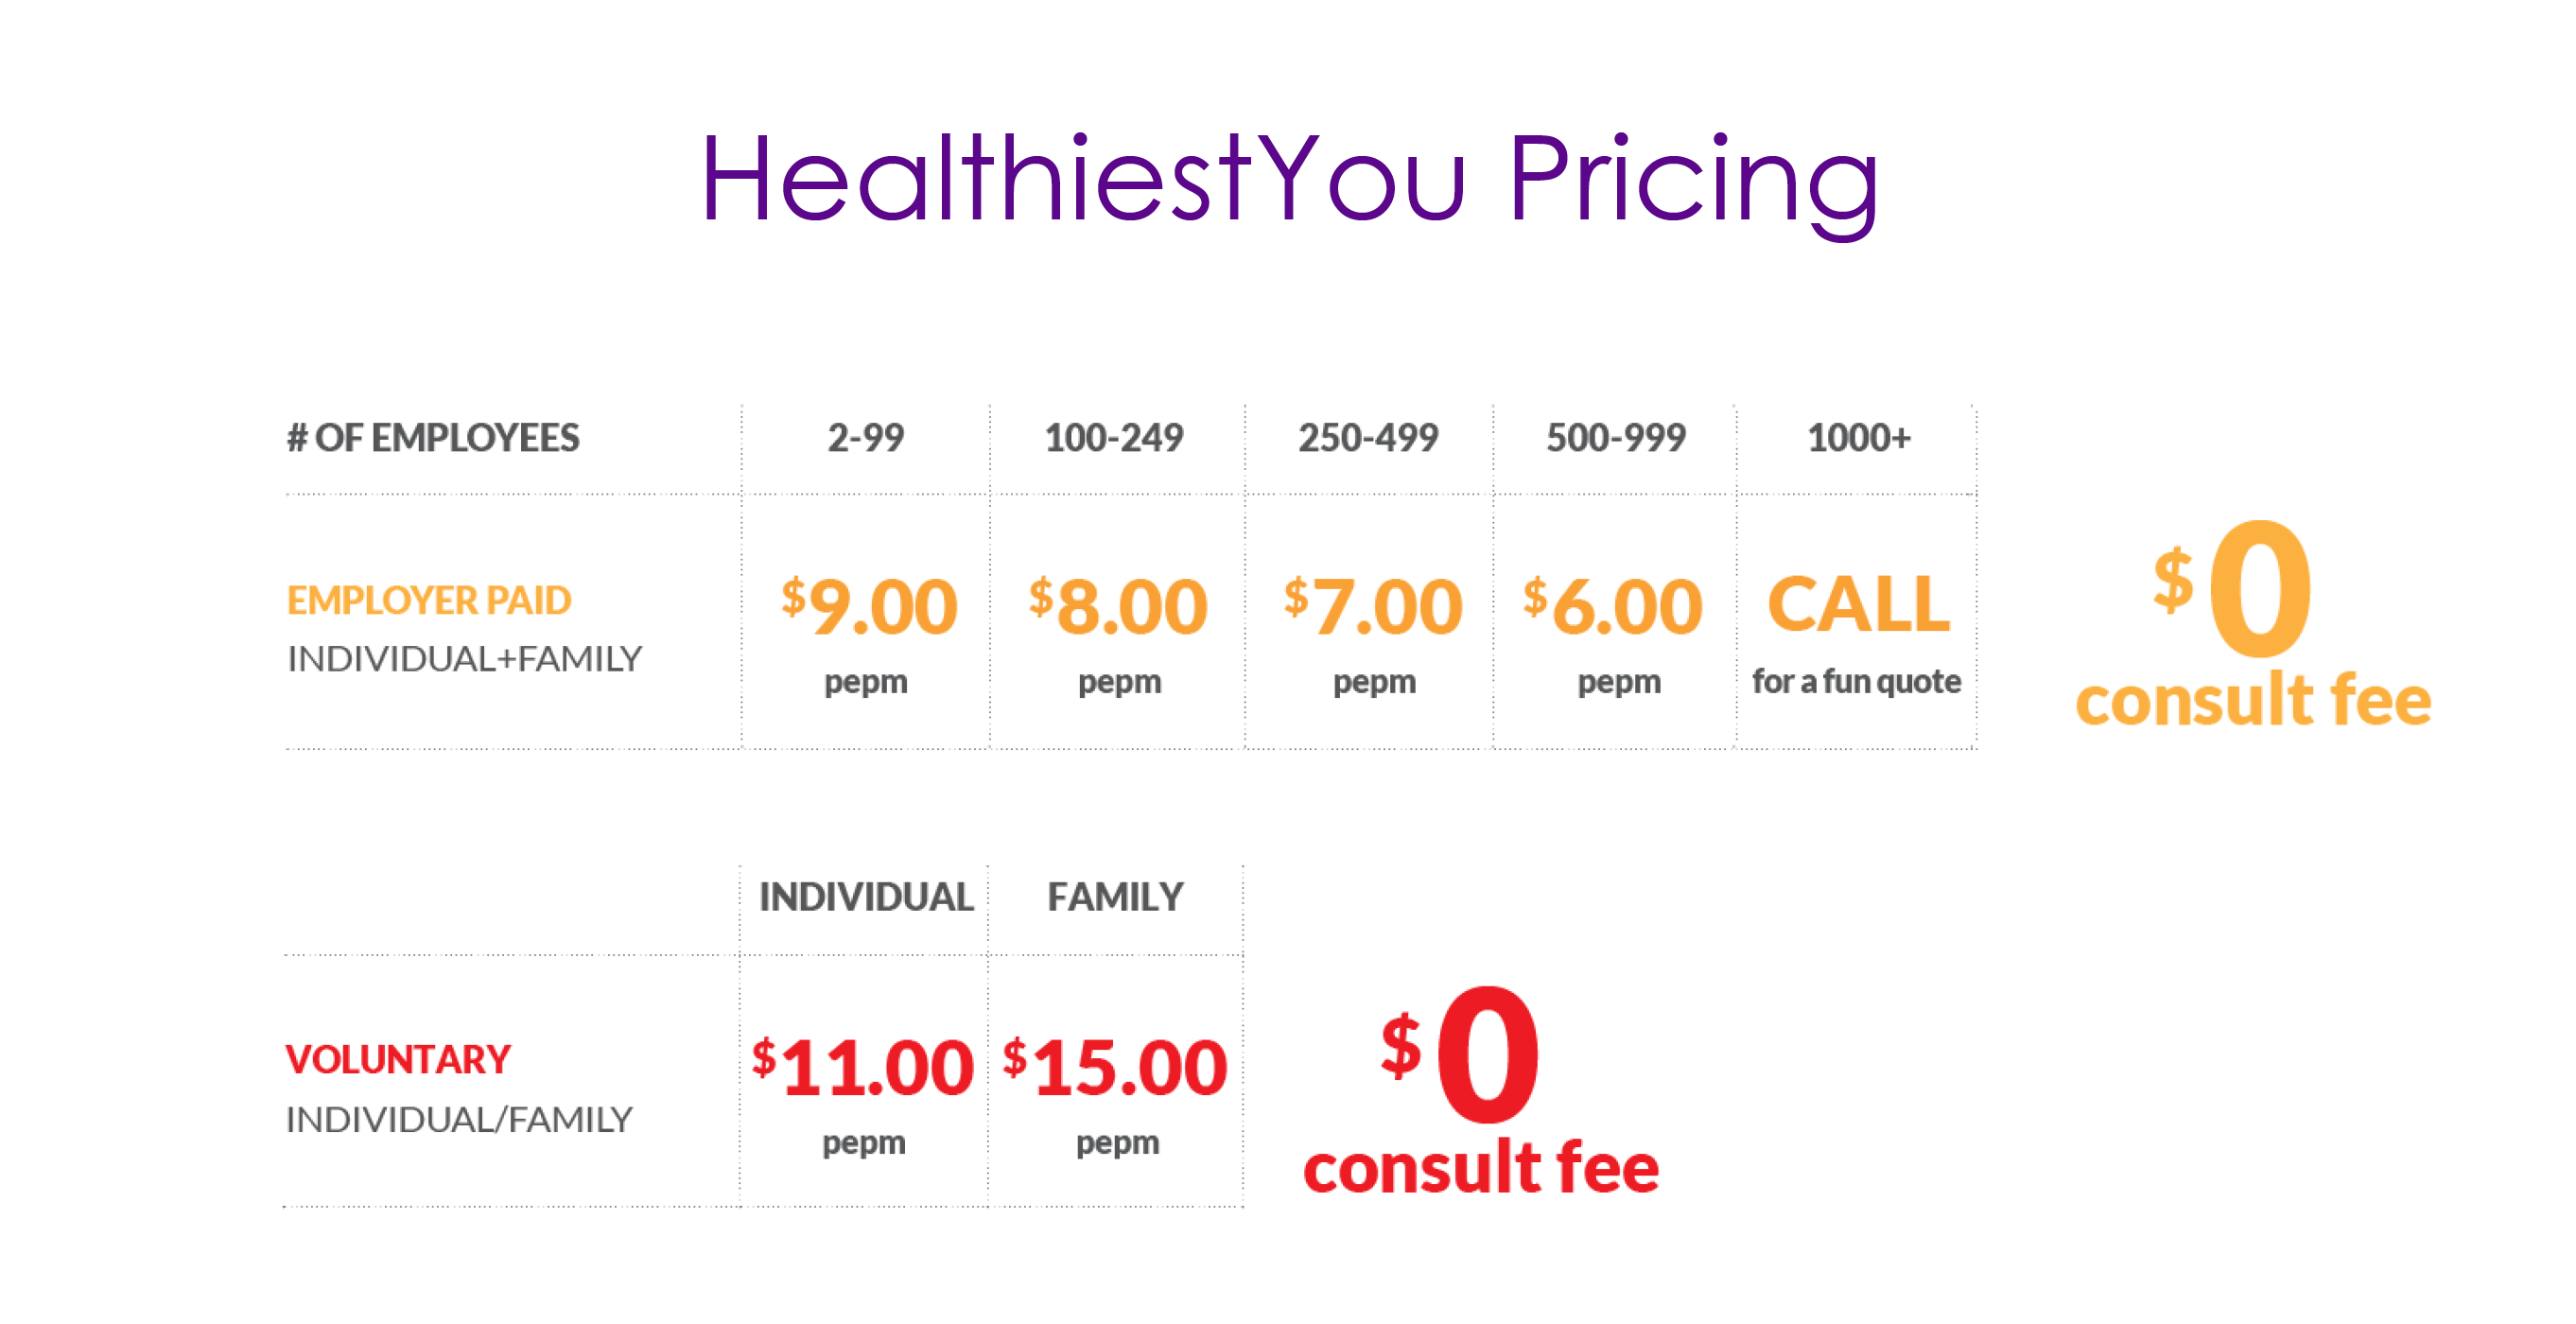 HealthiestYou Pricing